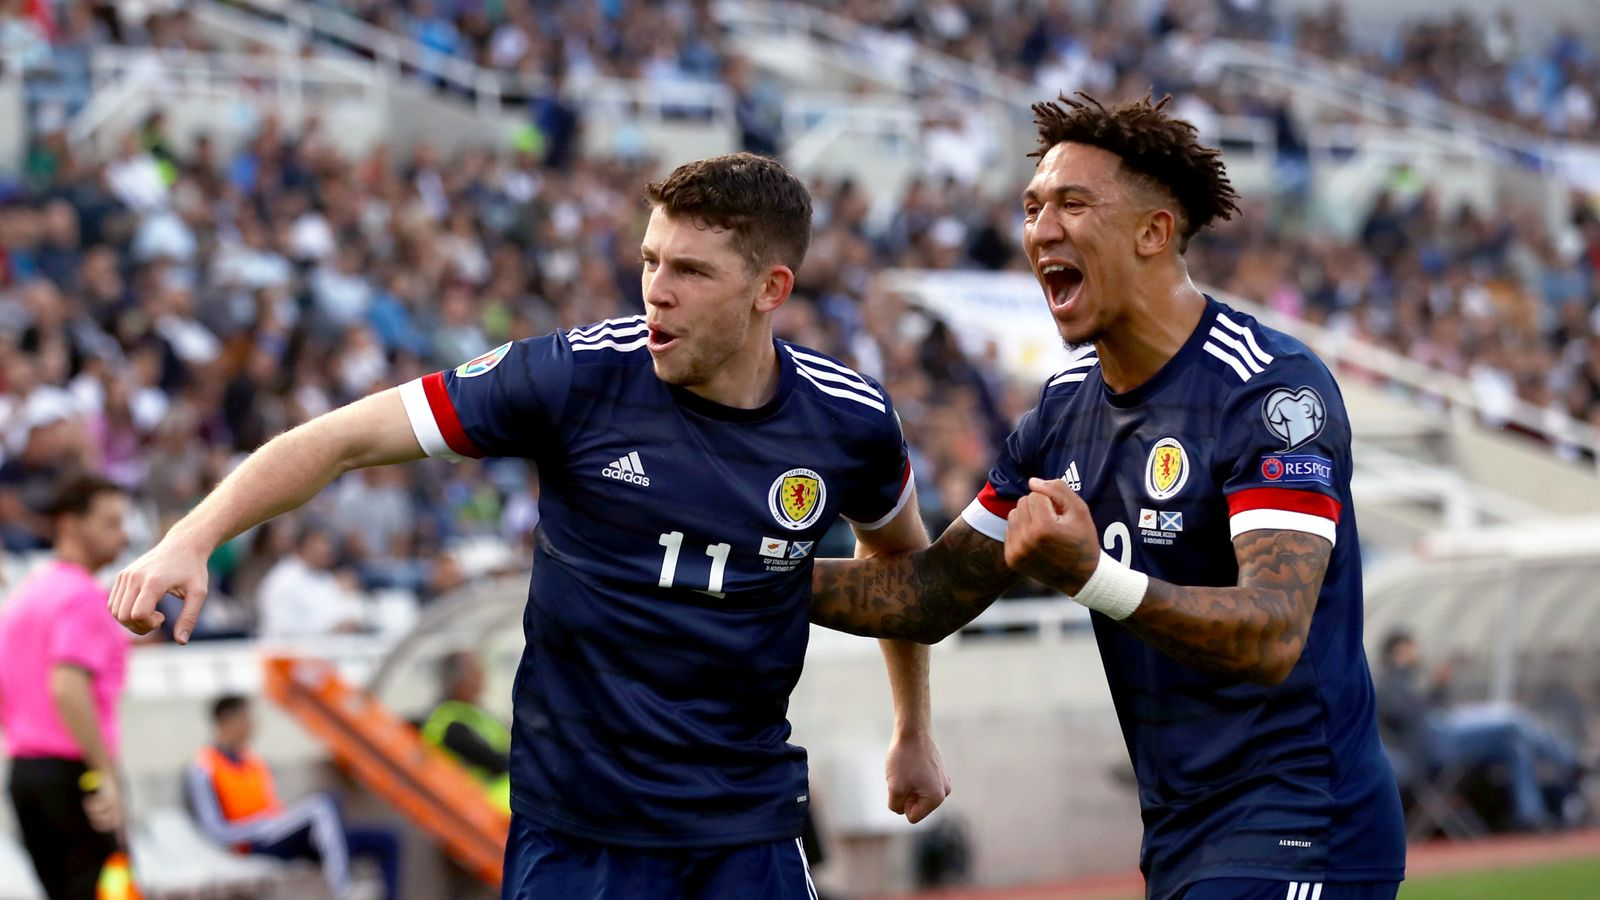 Cyprus 1-2 Scotland: Ryan Christie and John McGinn on target for visitors in Euro 2020 Qualifier